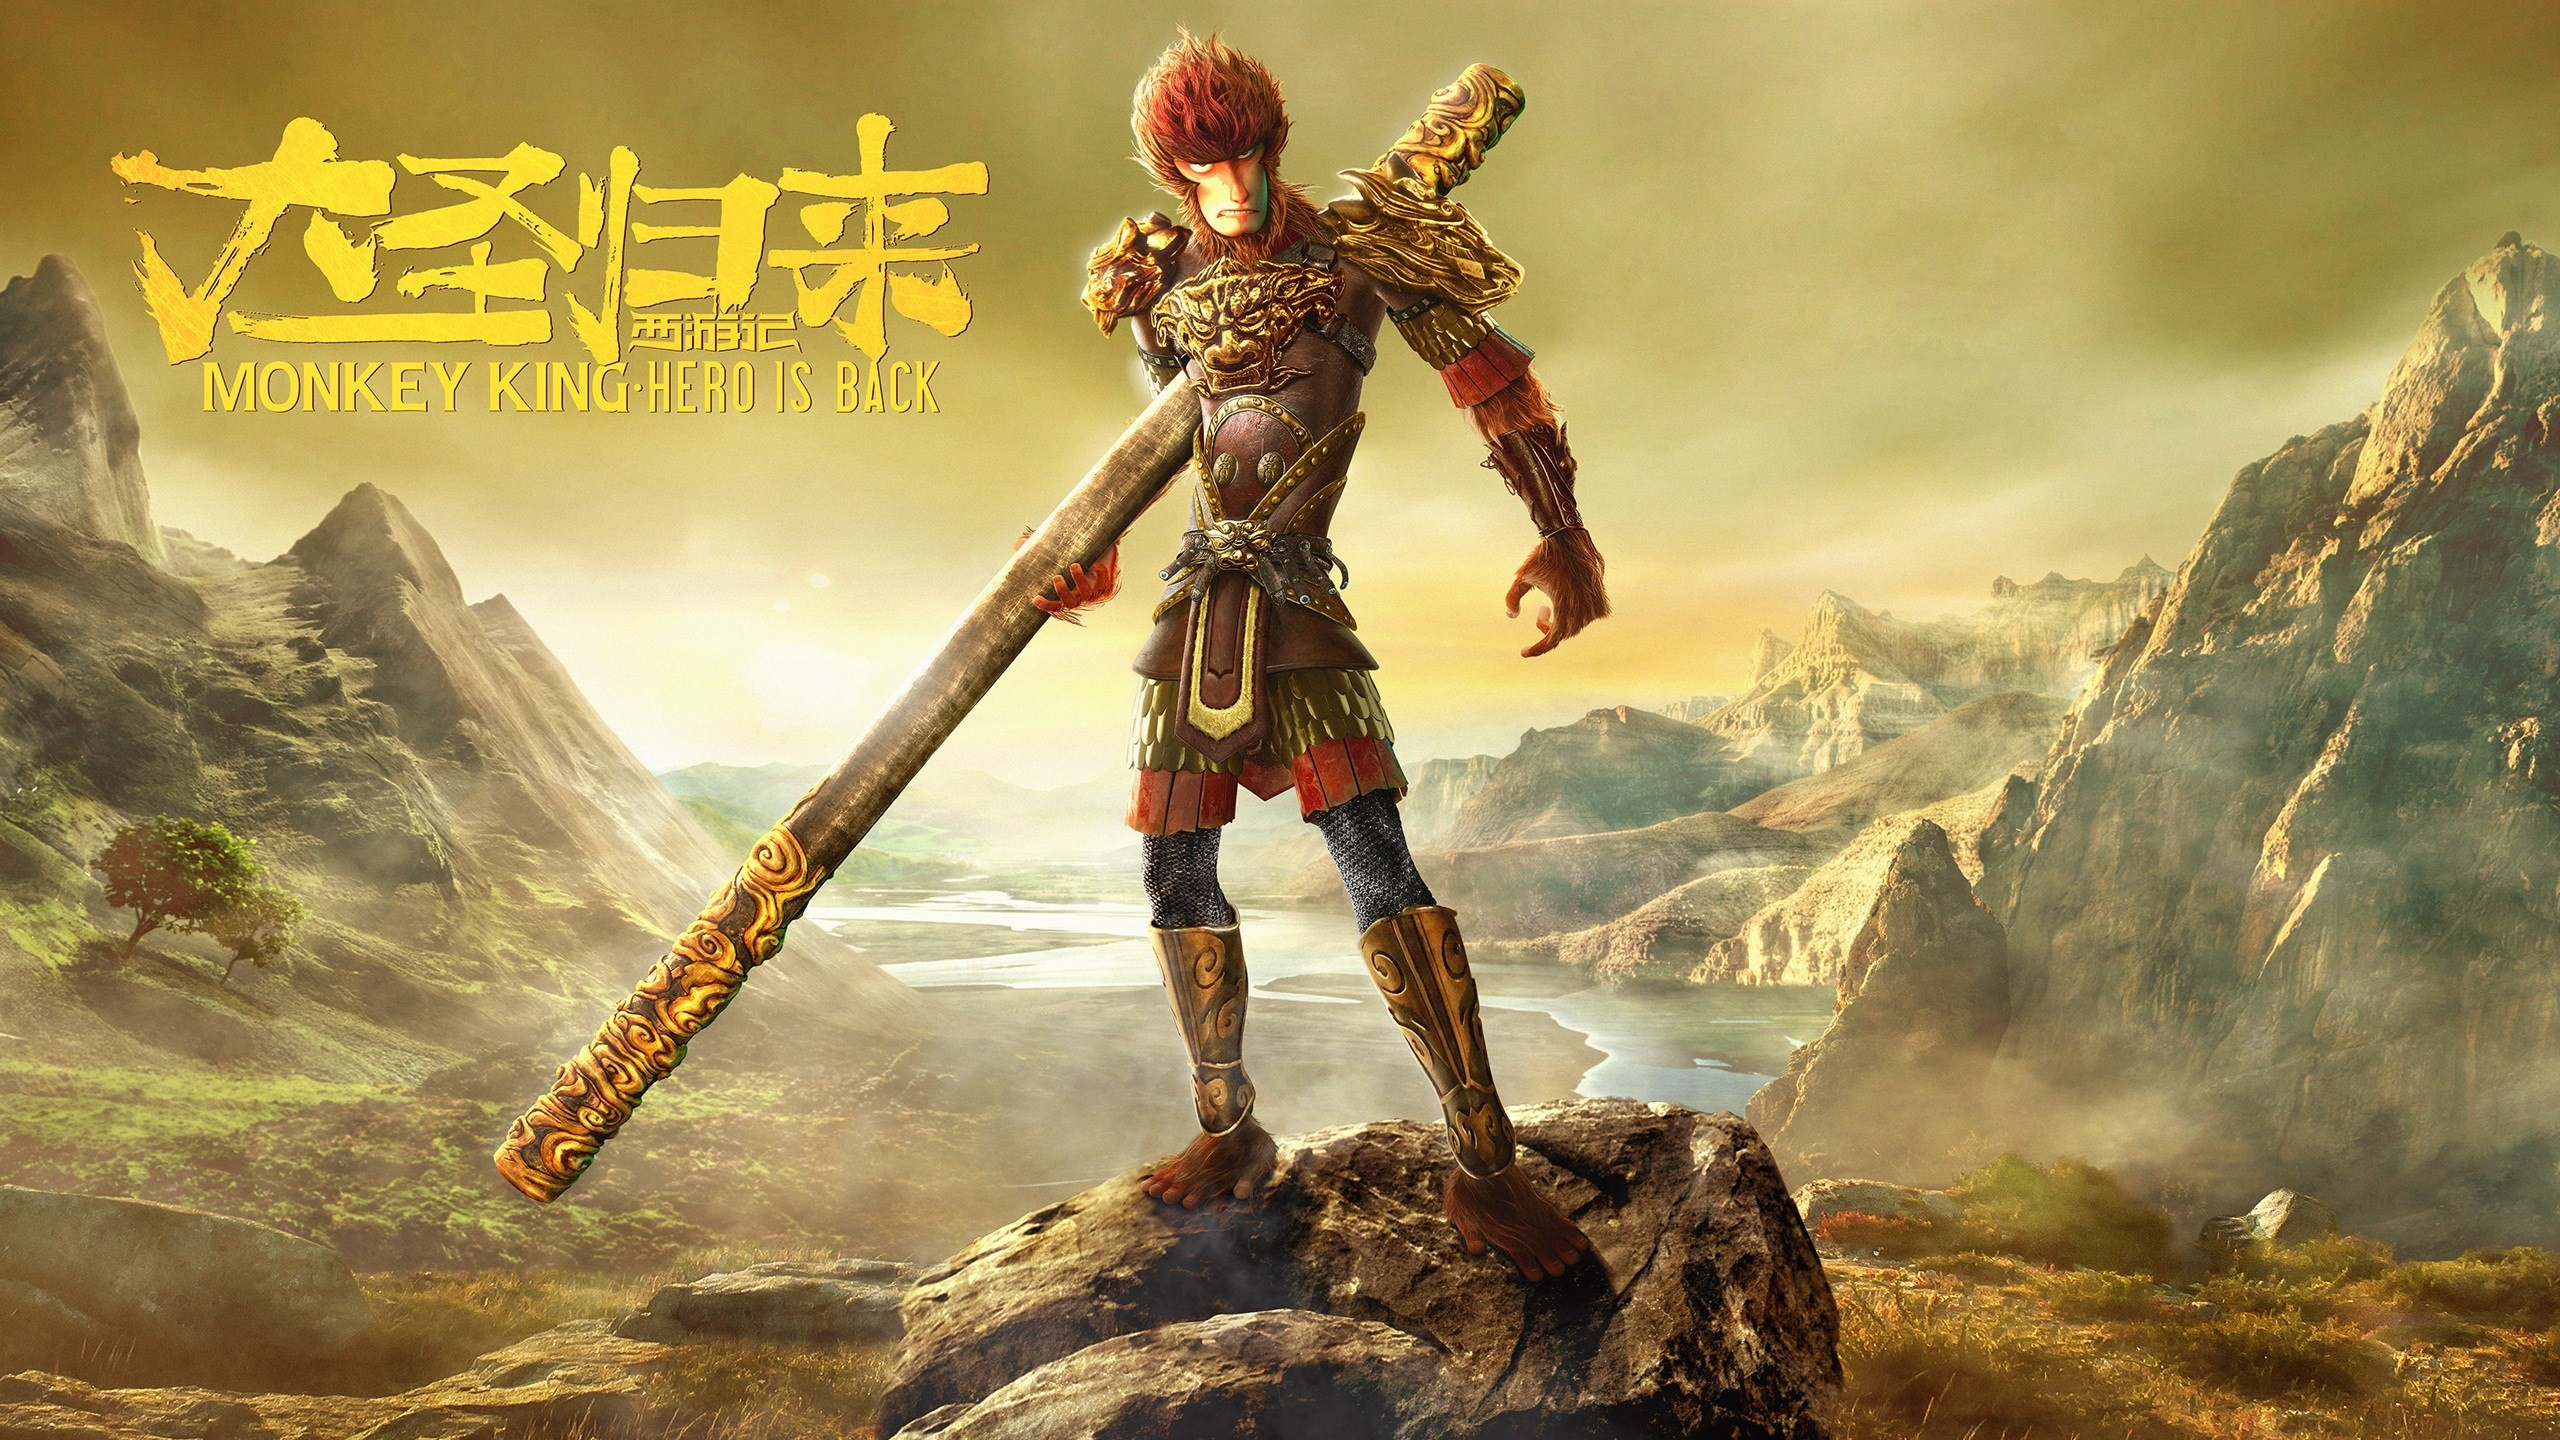 2560x1440 Beautiful monkey king hero is back backround (Honey Little )